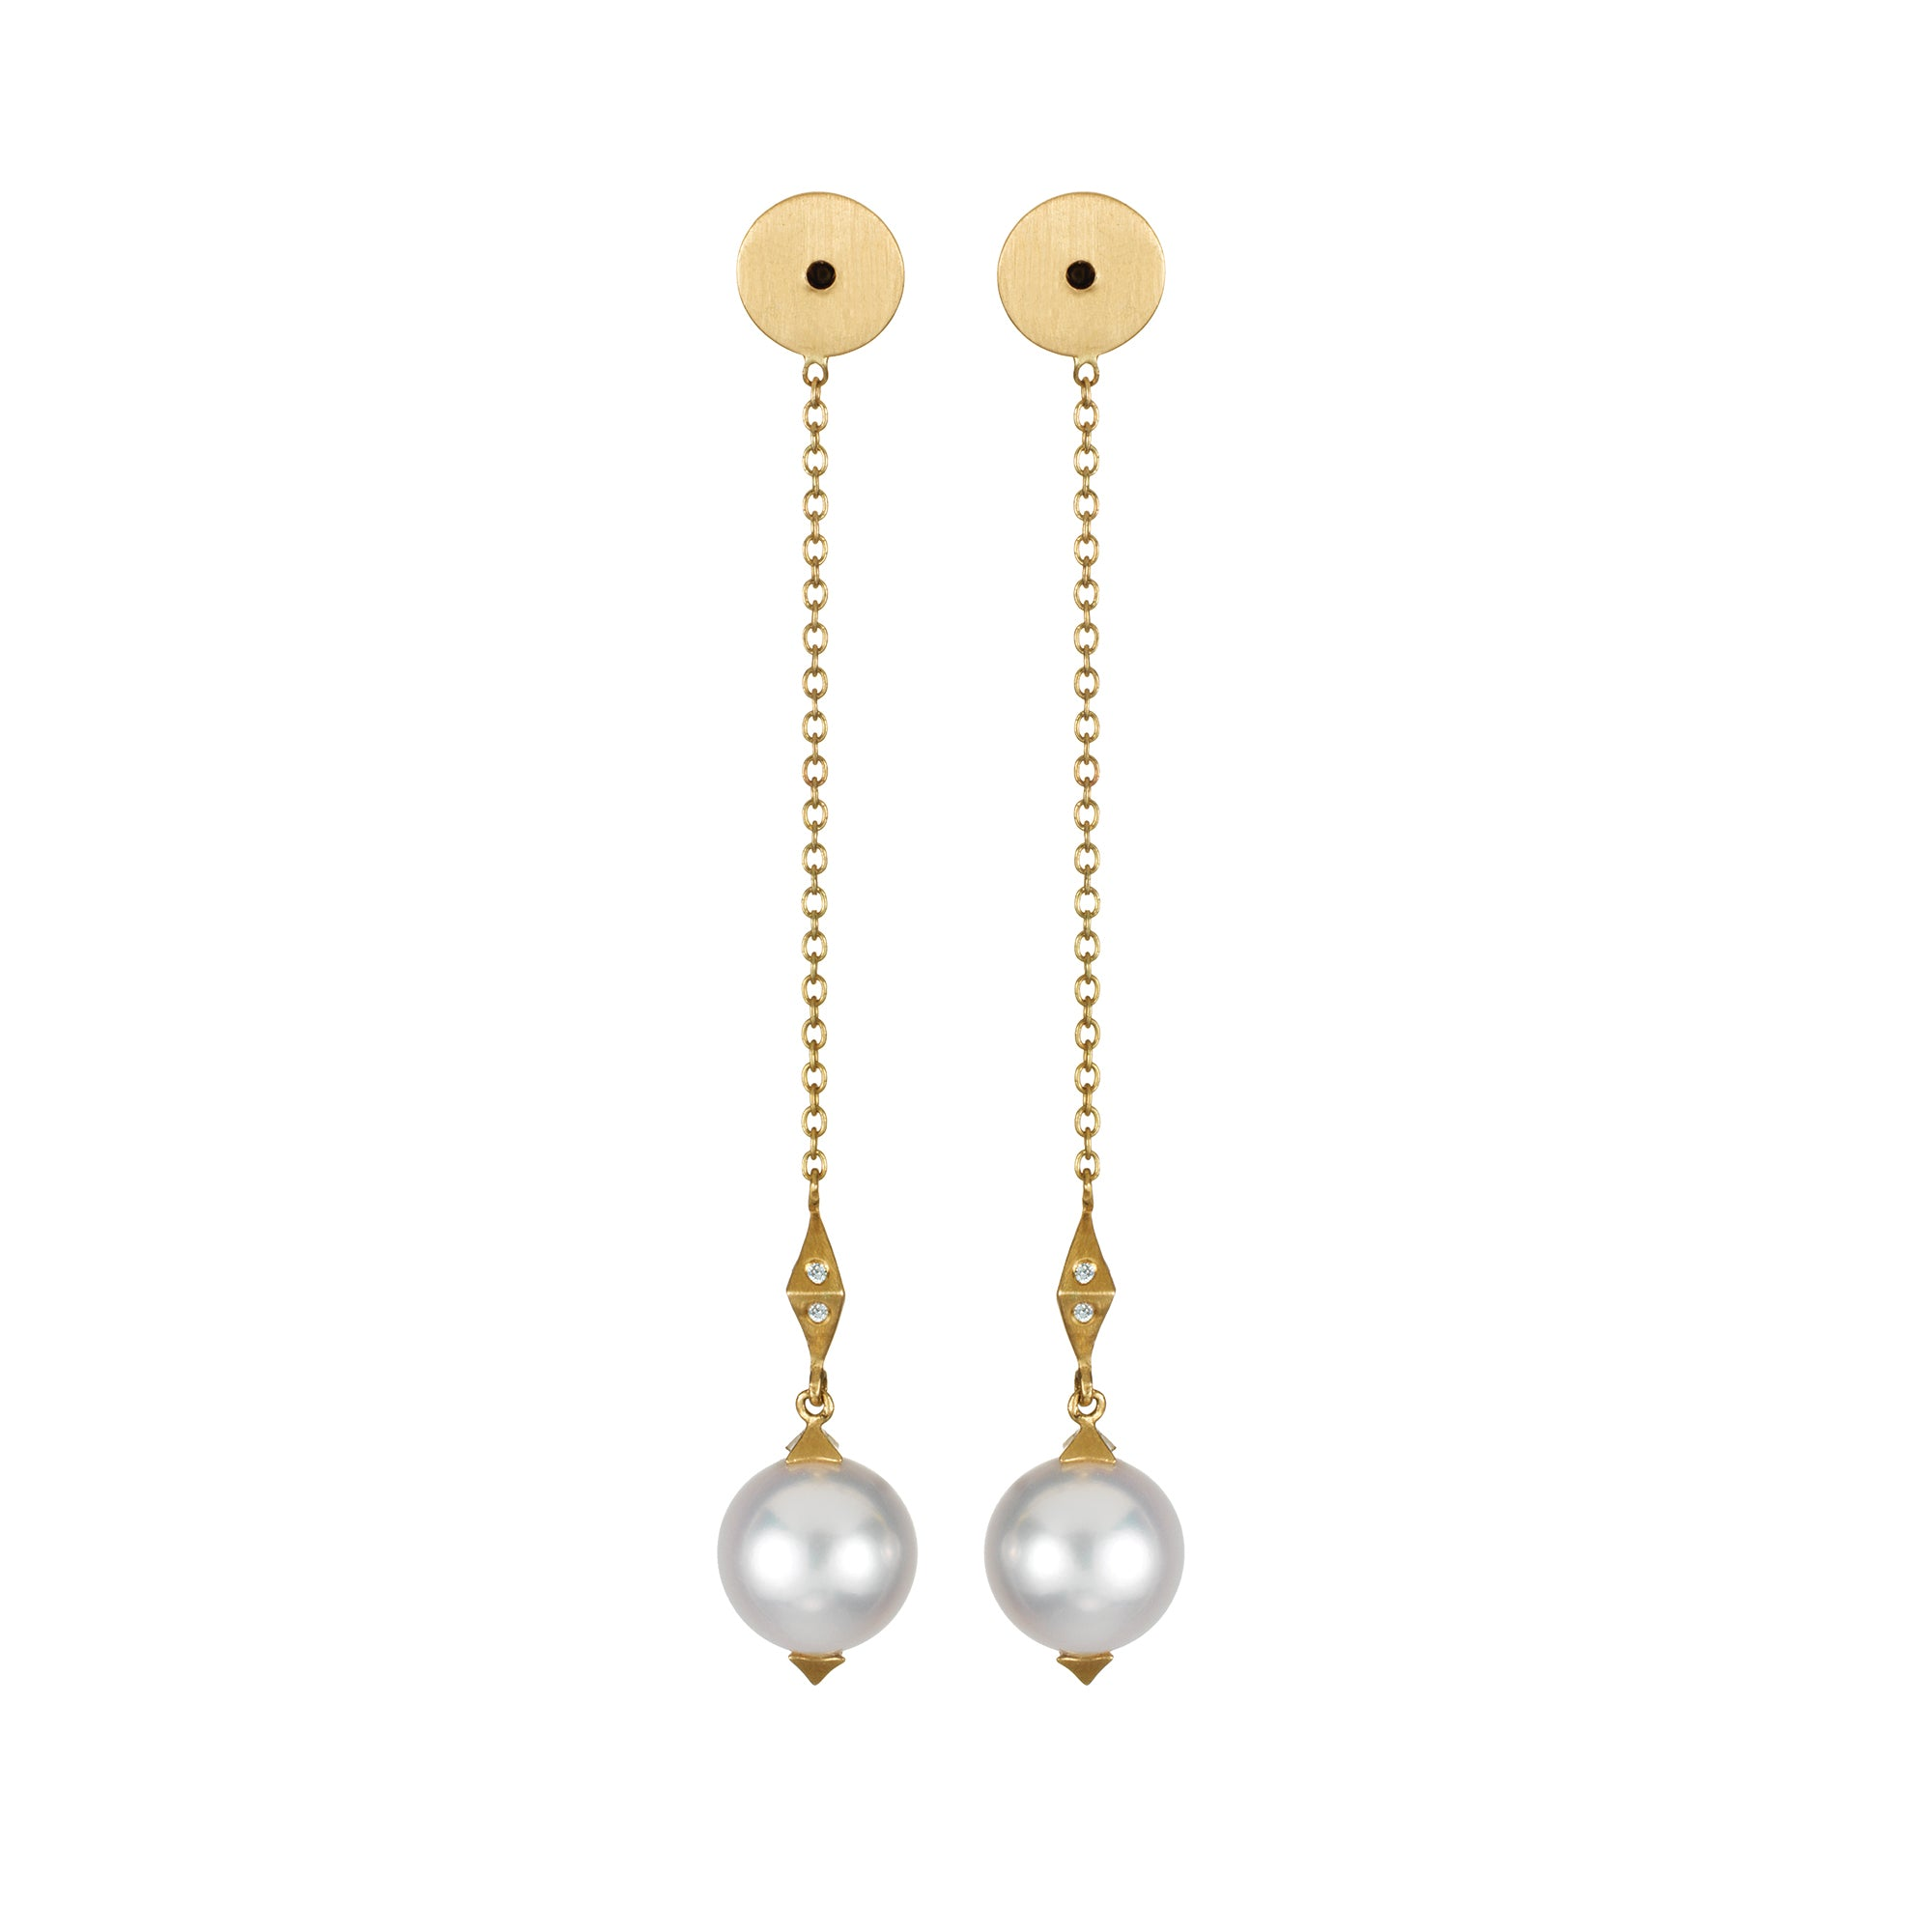 Gold White Diamond South Sea Pearl Earring Backings by Anahita for Broken English Jewelry